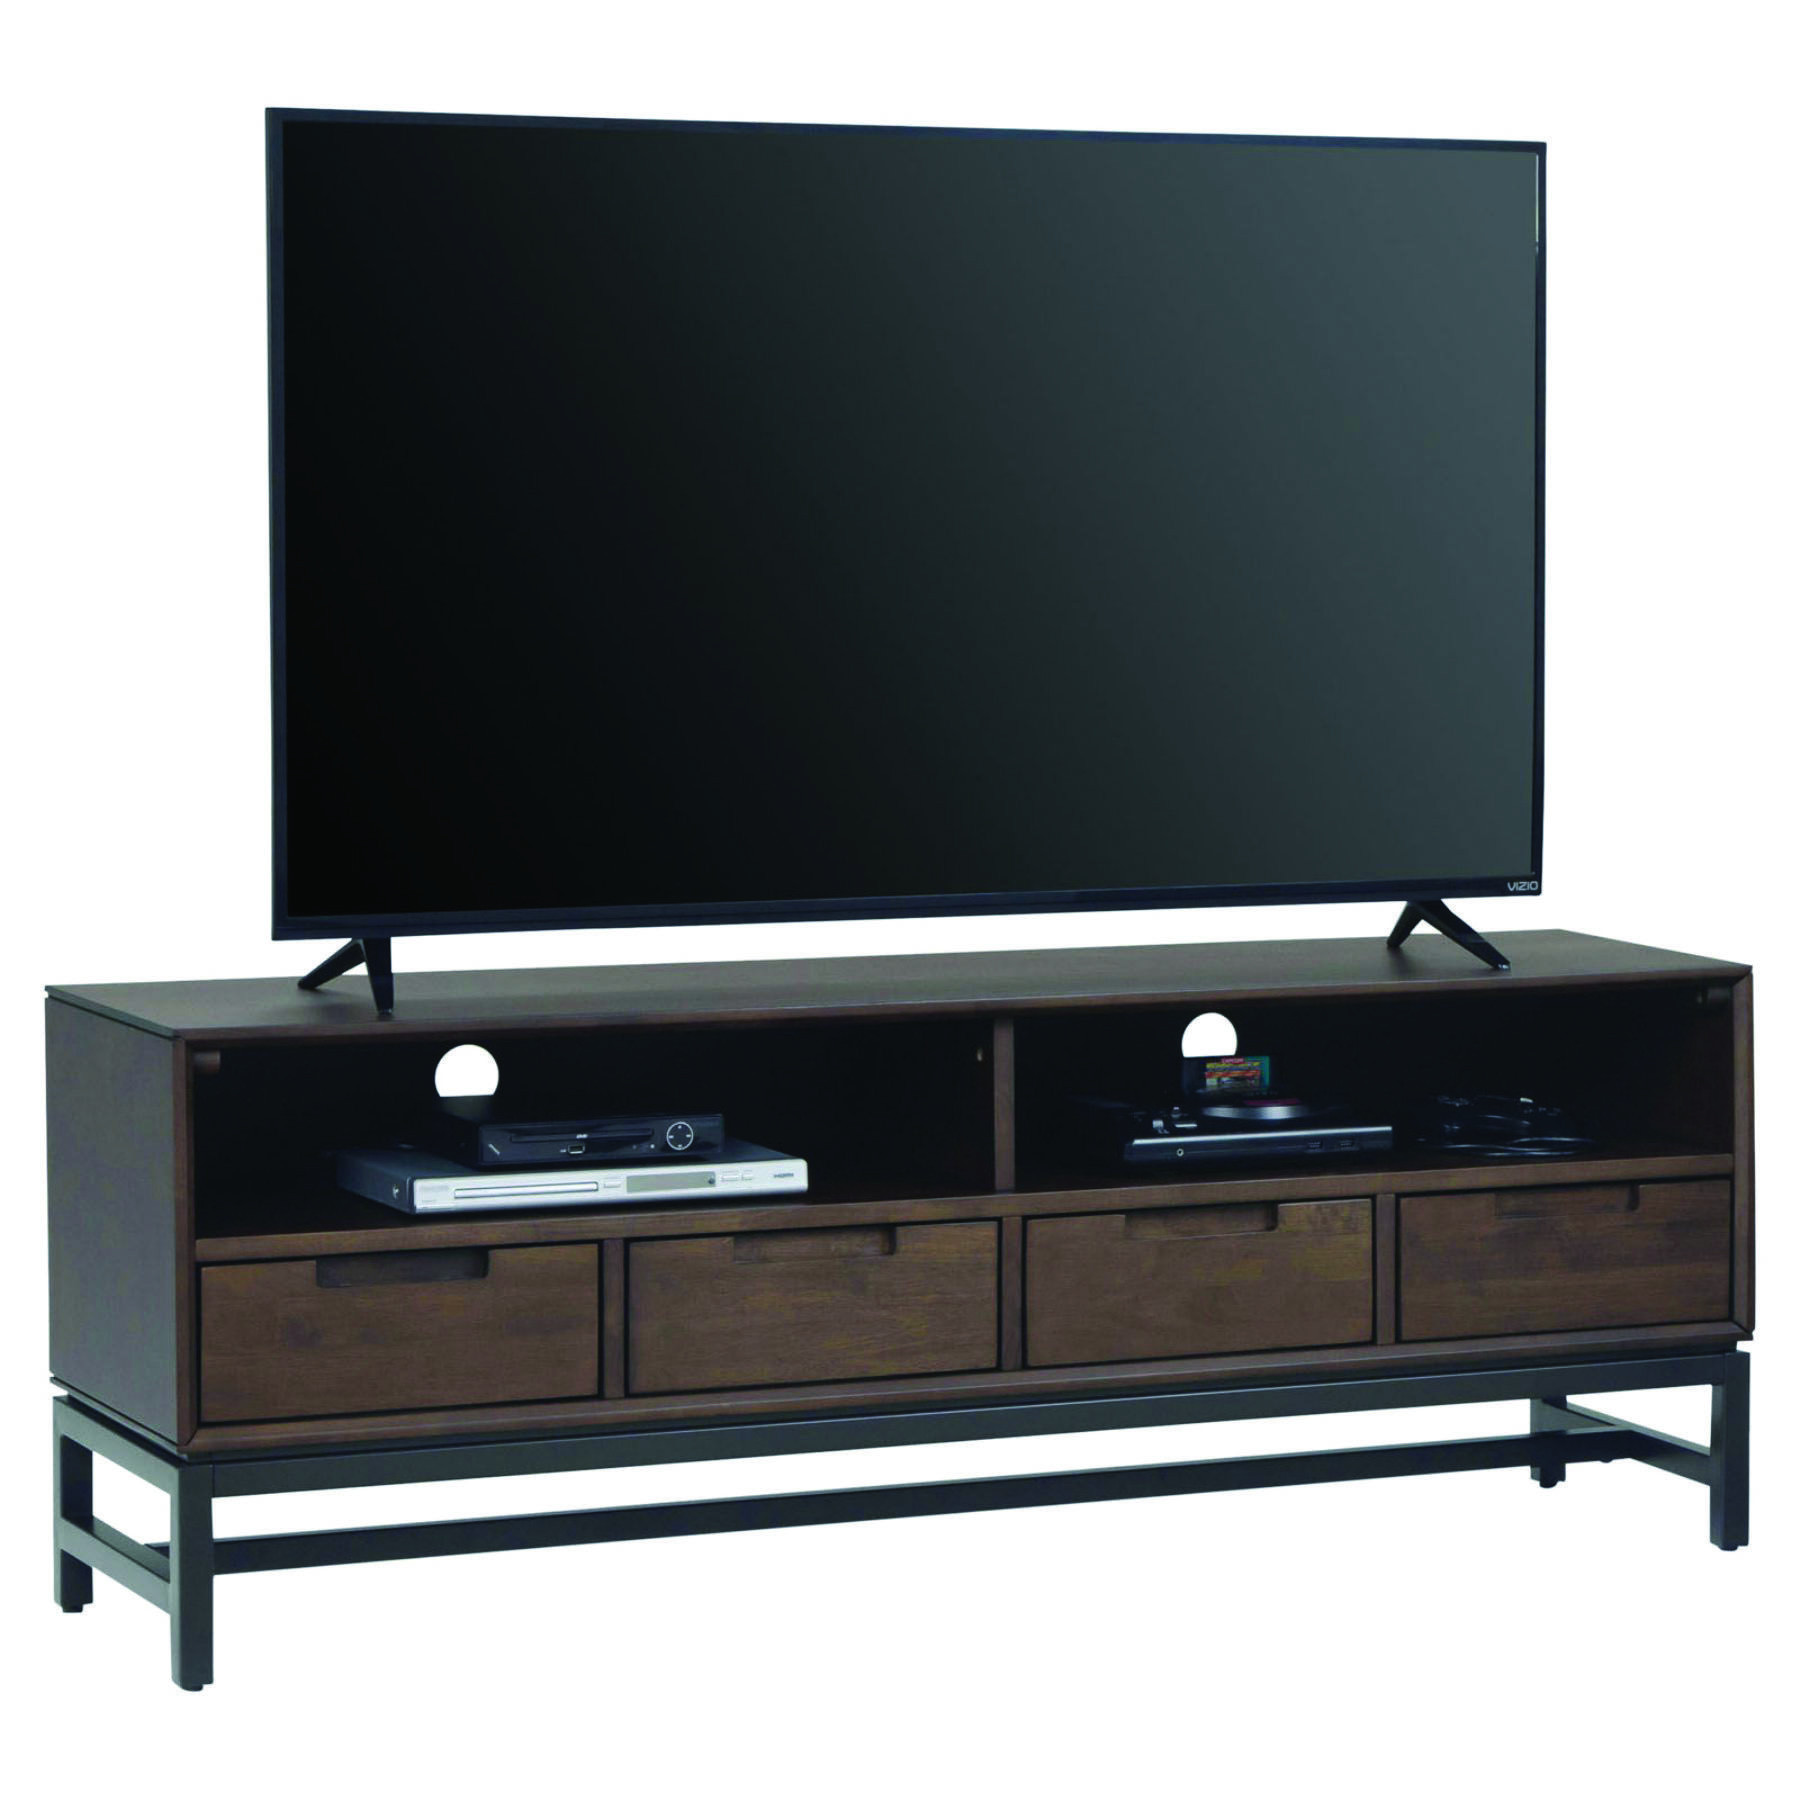 Leading Mid Century Modern Floating Tv Stand On This Favorite Site Mid Century Modern Tv Stand Low Tv Stand Modern Tv Stand